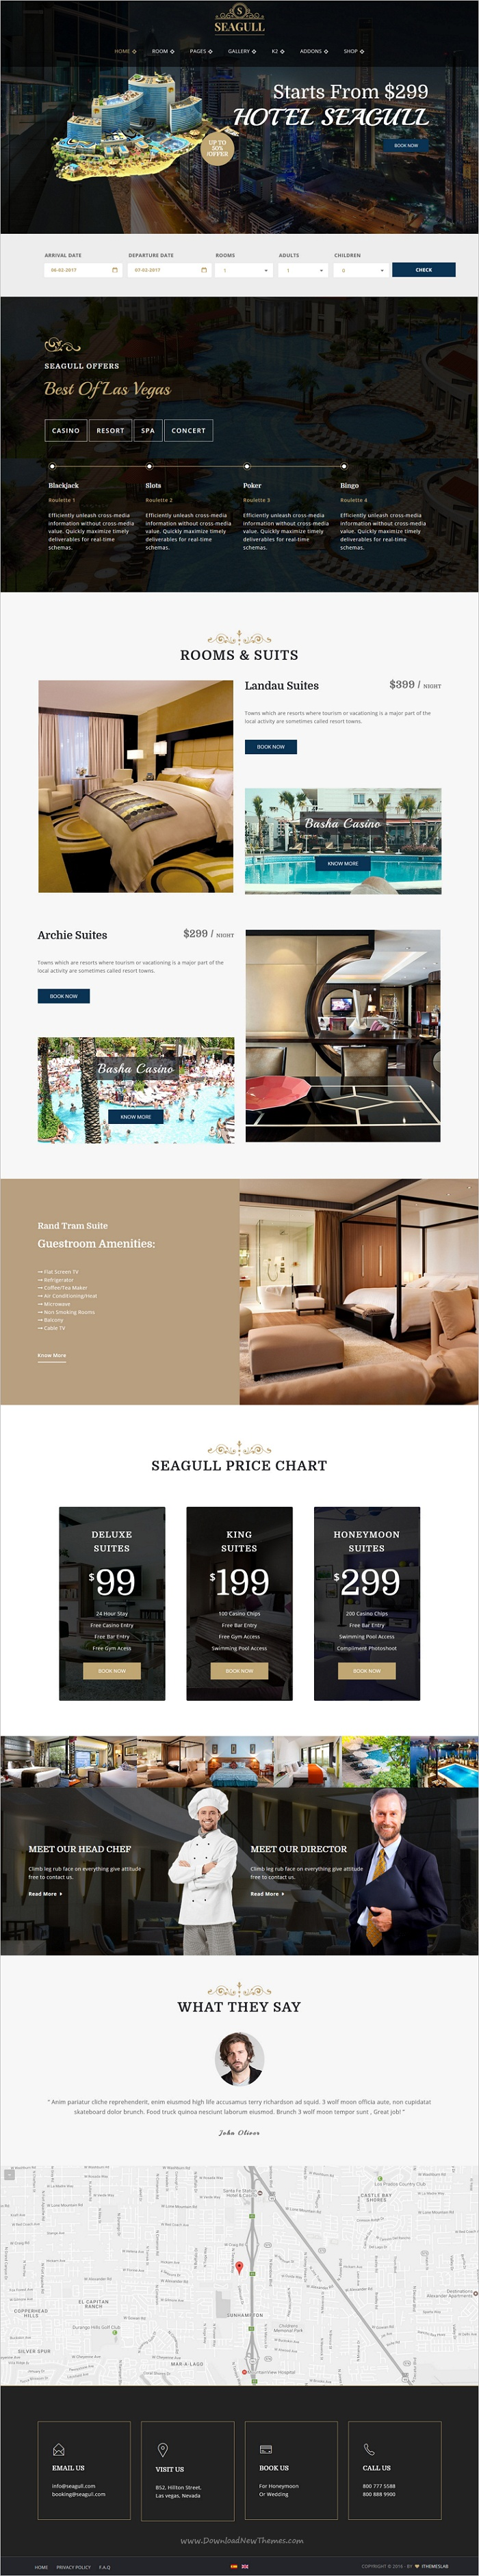 Seagull is a wonderful responsive 5in1 @Joomla template for #webdesign #hotels and #resort websites download now➩ https://themeforest.net/item/seagull-hotel-amp-resort-joomla-template/19241439?ref=Datasata